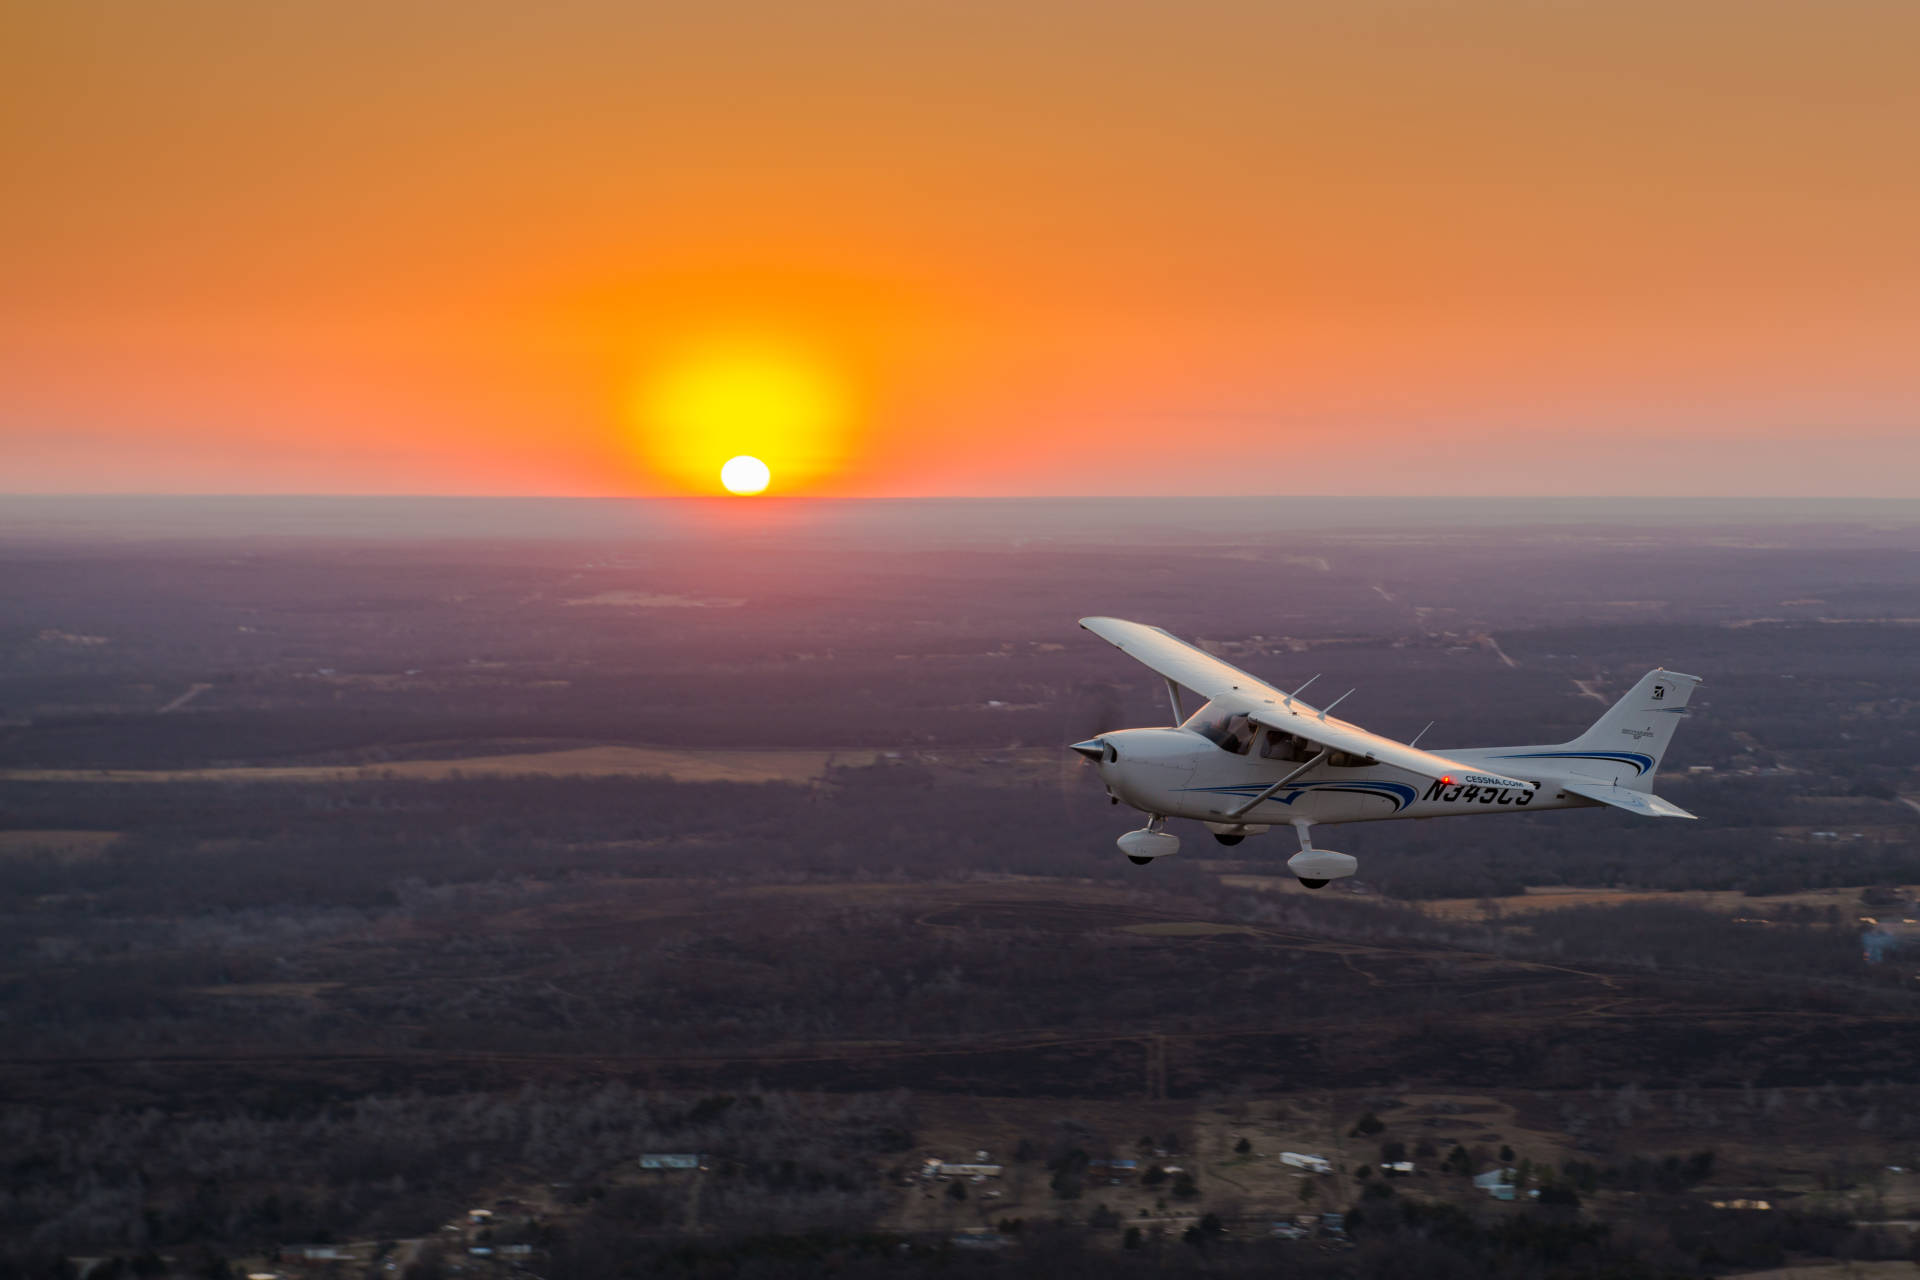 Cessna 172 at sunset